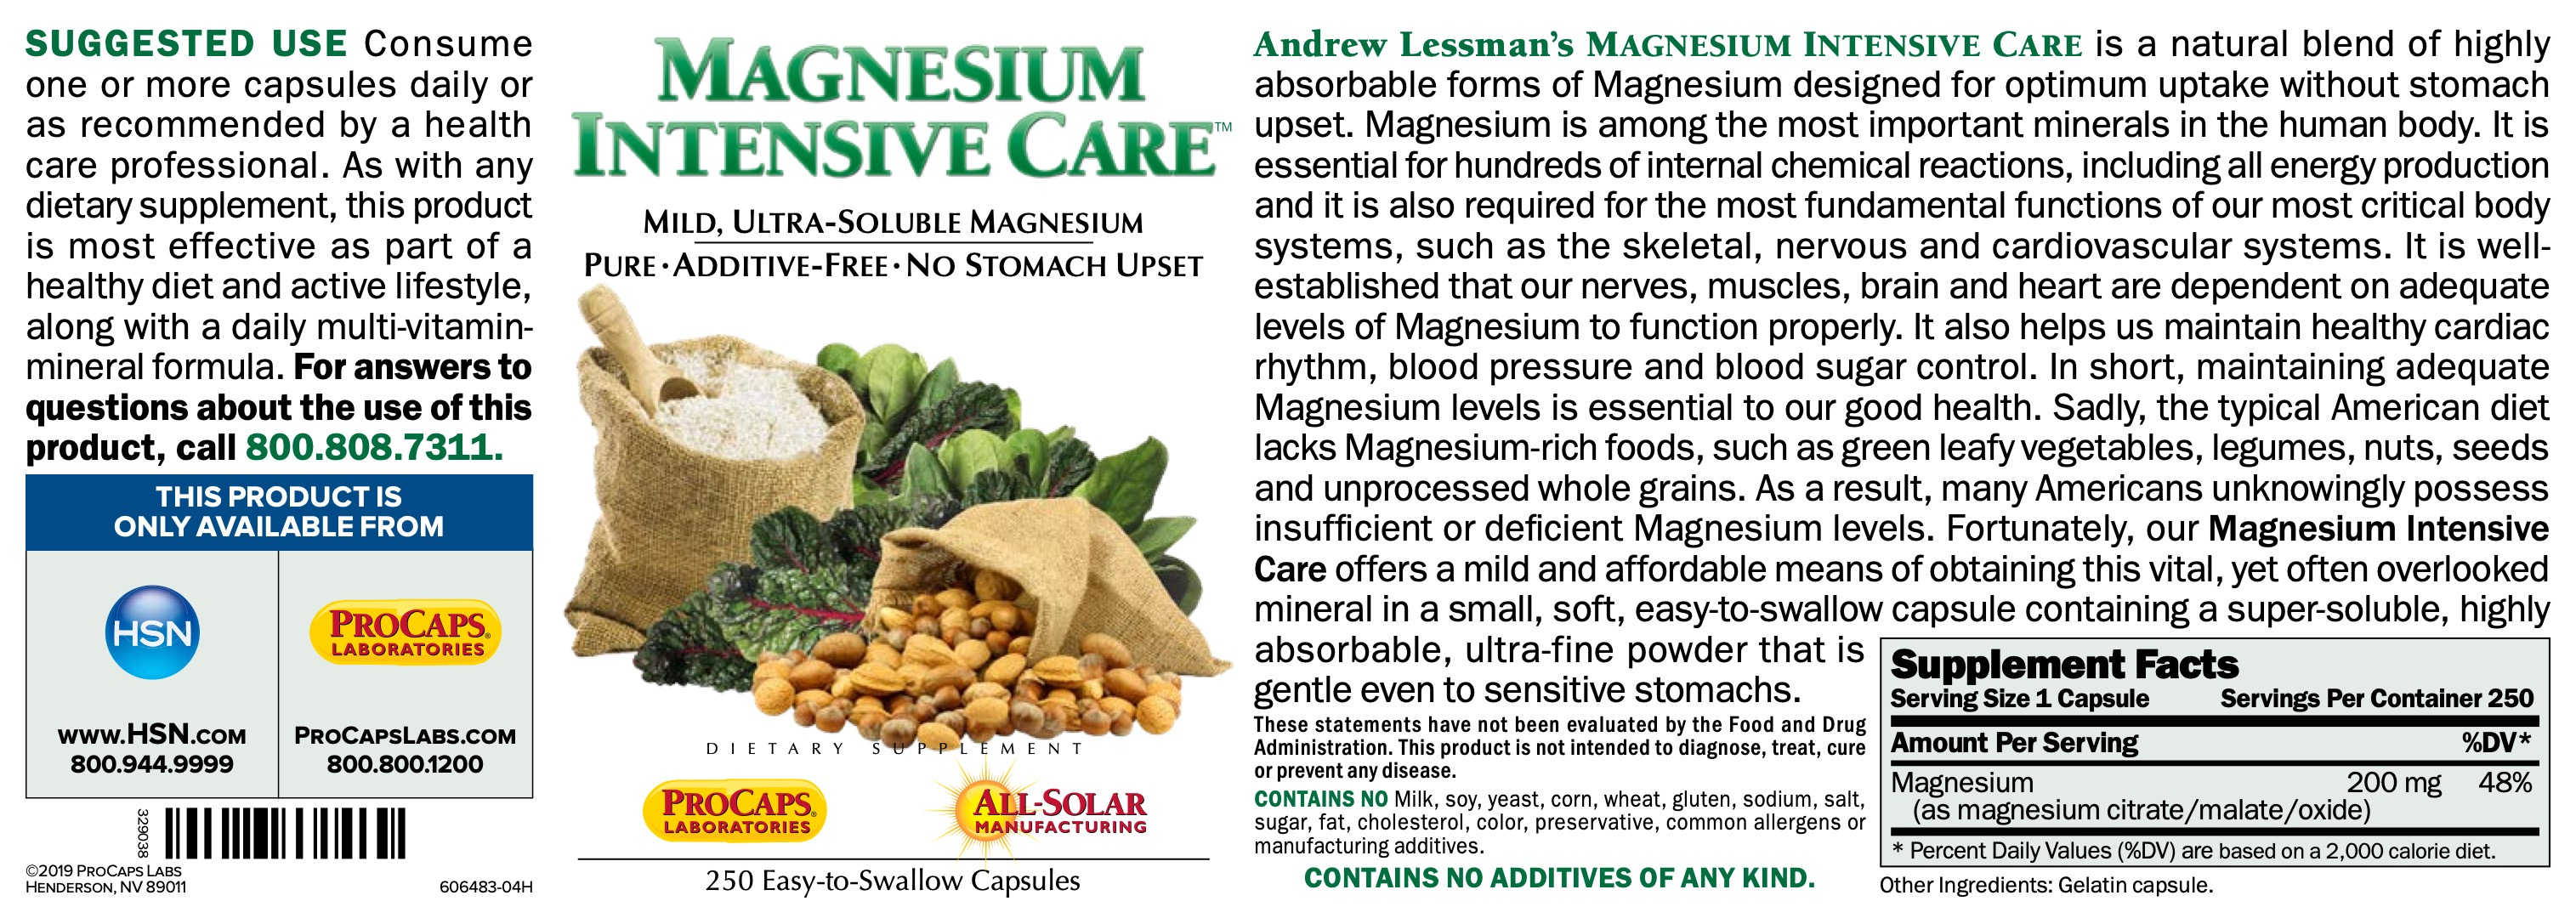 Magnesium-Intensive-Care-Capsules-Mineral-Products